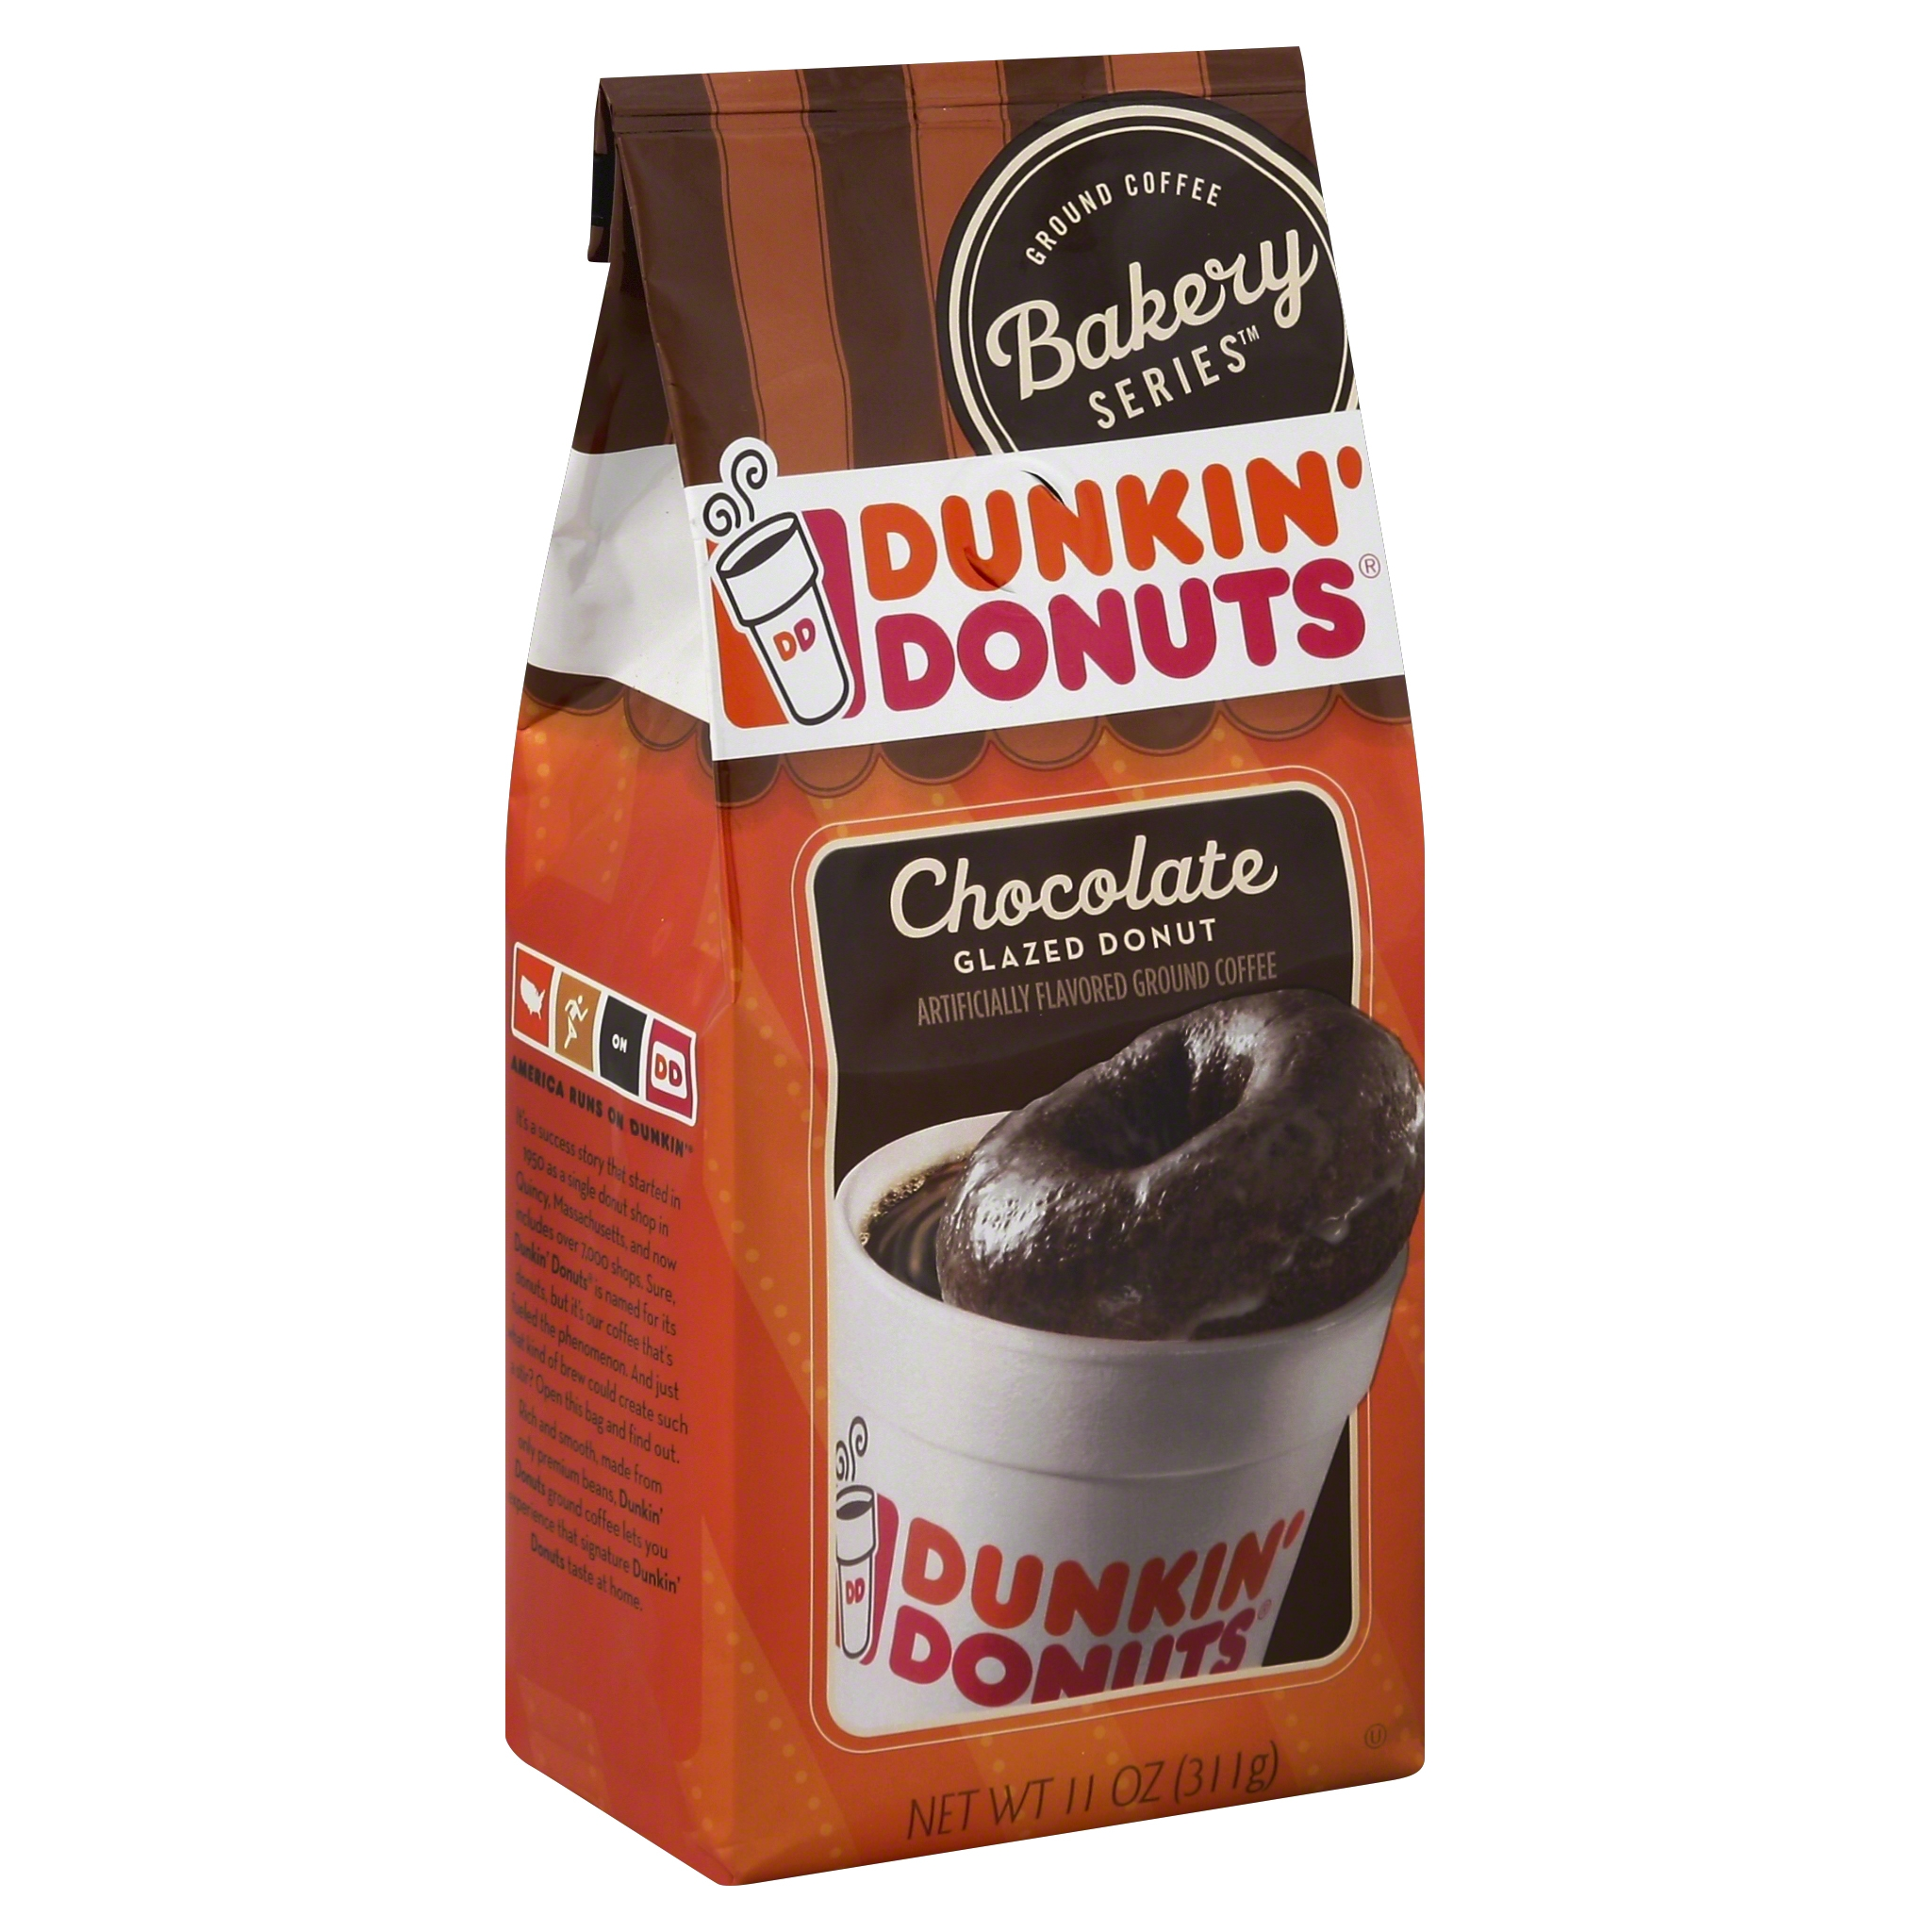 Dunkin' Donuts Ground Coffee Bakery Series Chocolate Glazed Dounut 11 Ounce